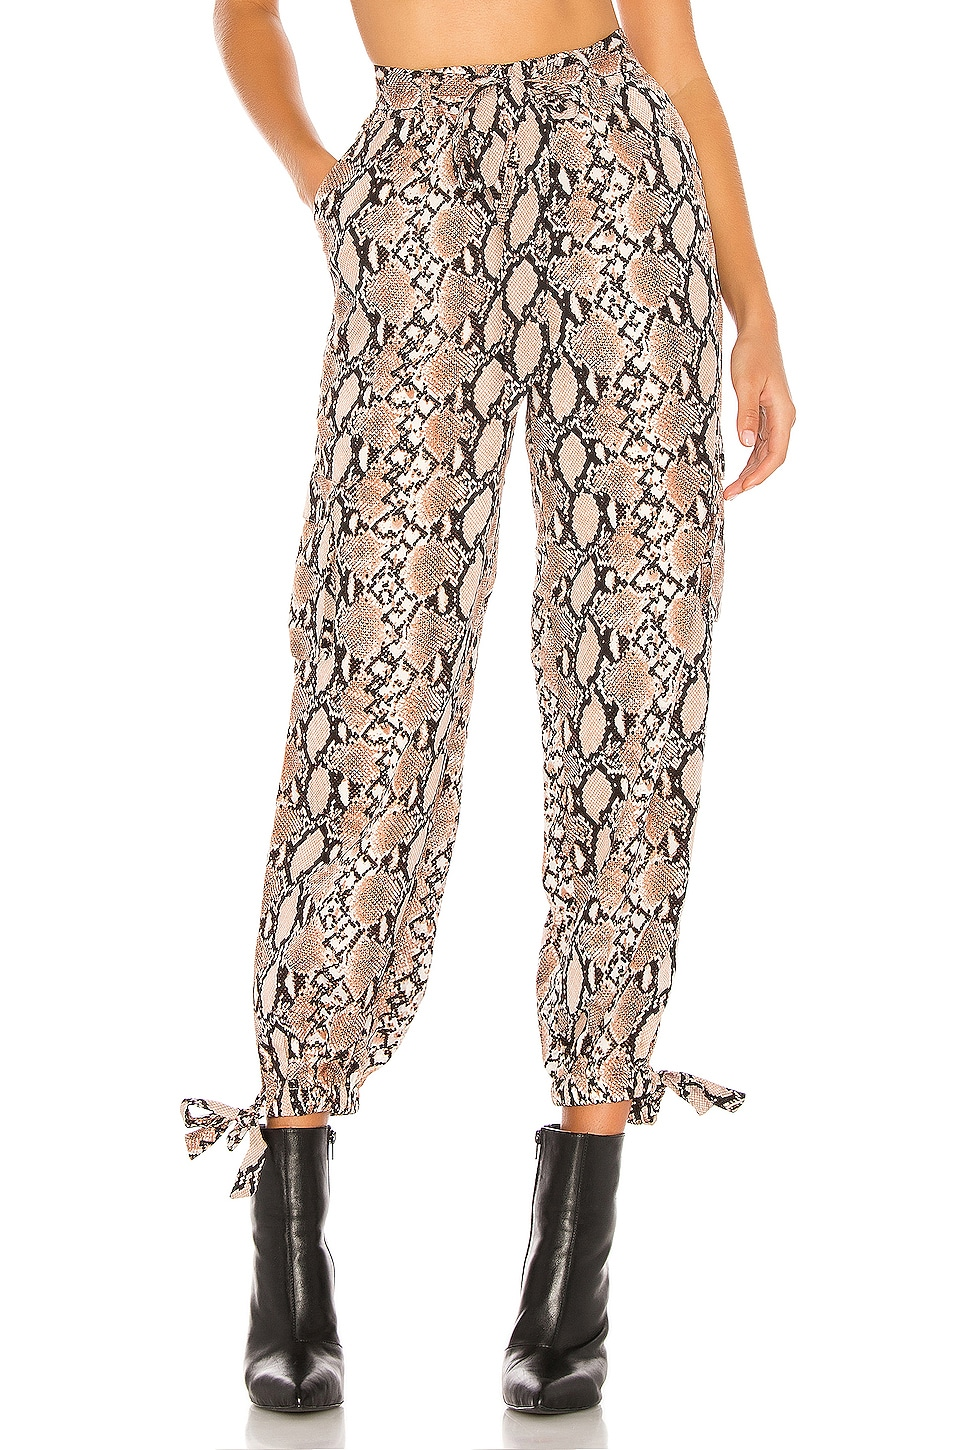 h:ours Simi Pants in Tan Snake